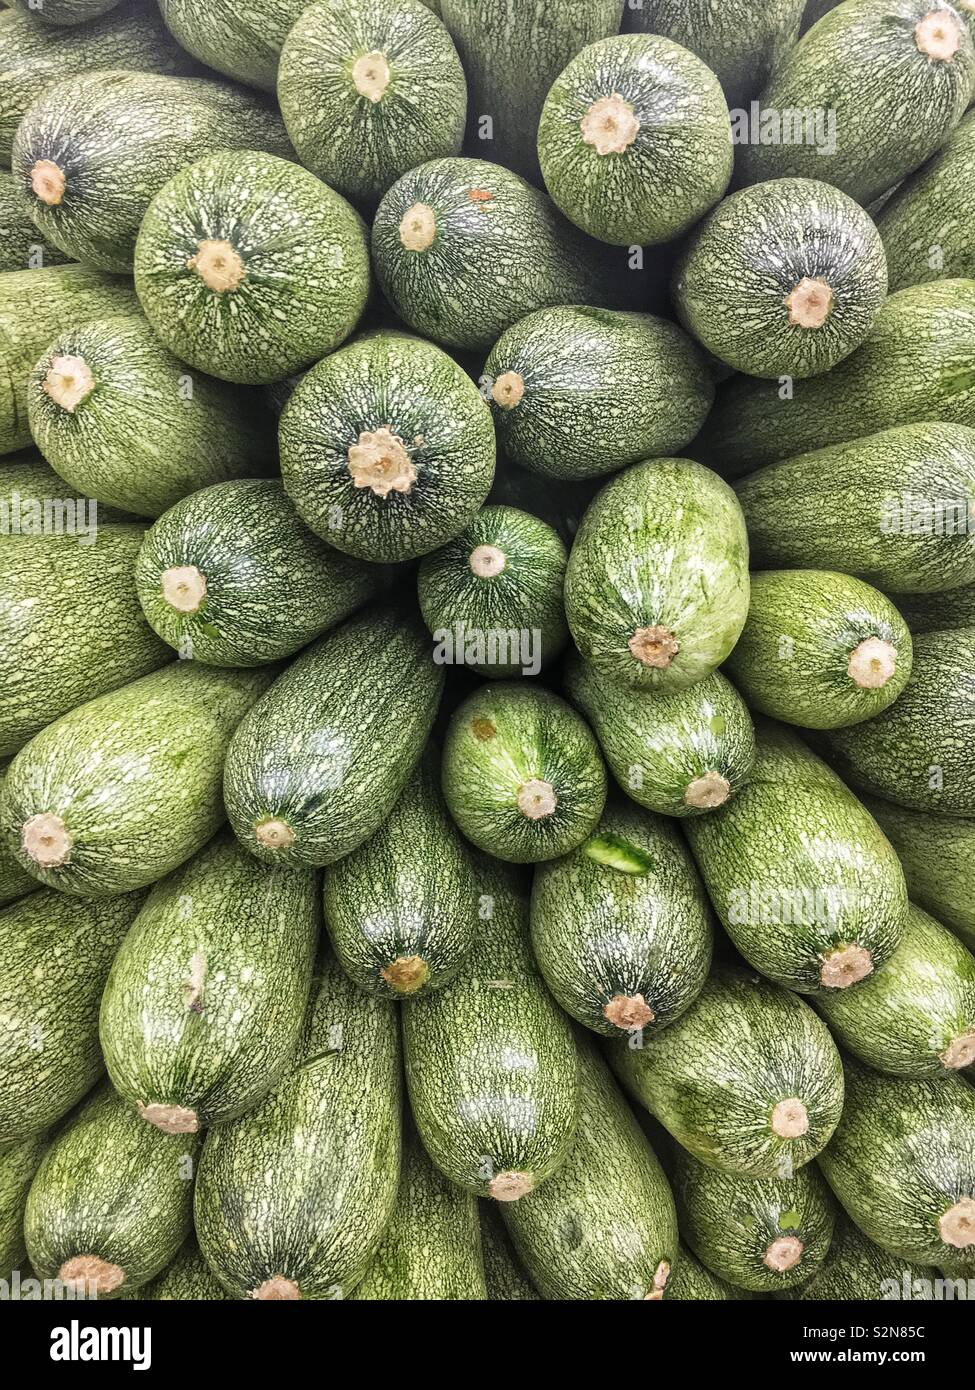 Full frame fresh delicious Mexican zucchini on display and for sale at the local produce market. - Stock Image